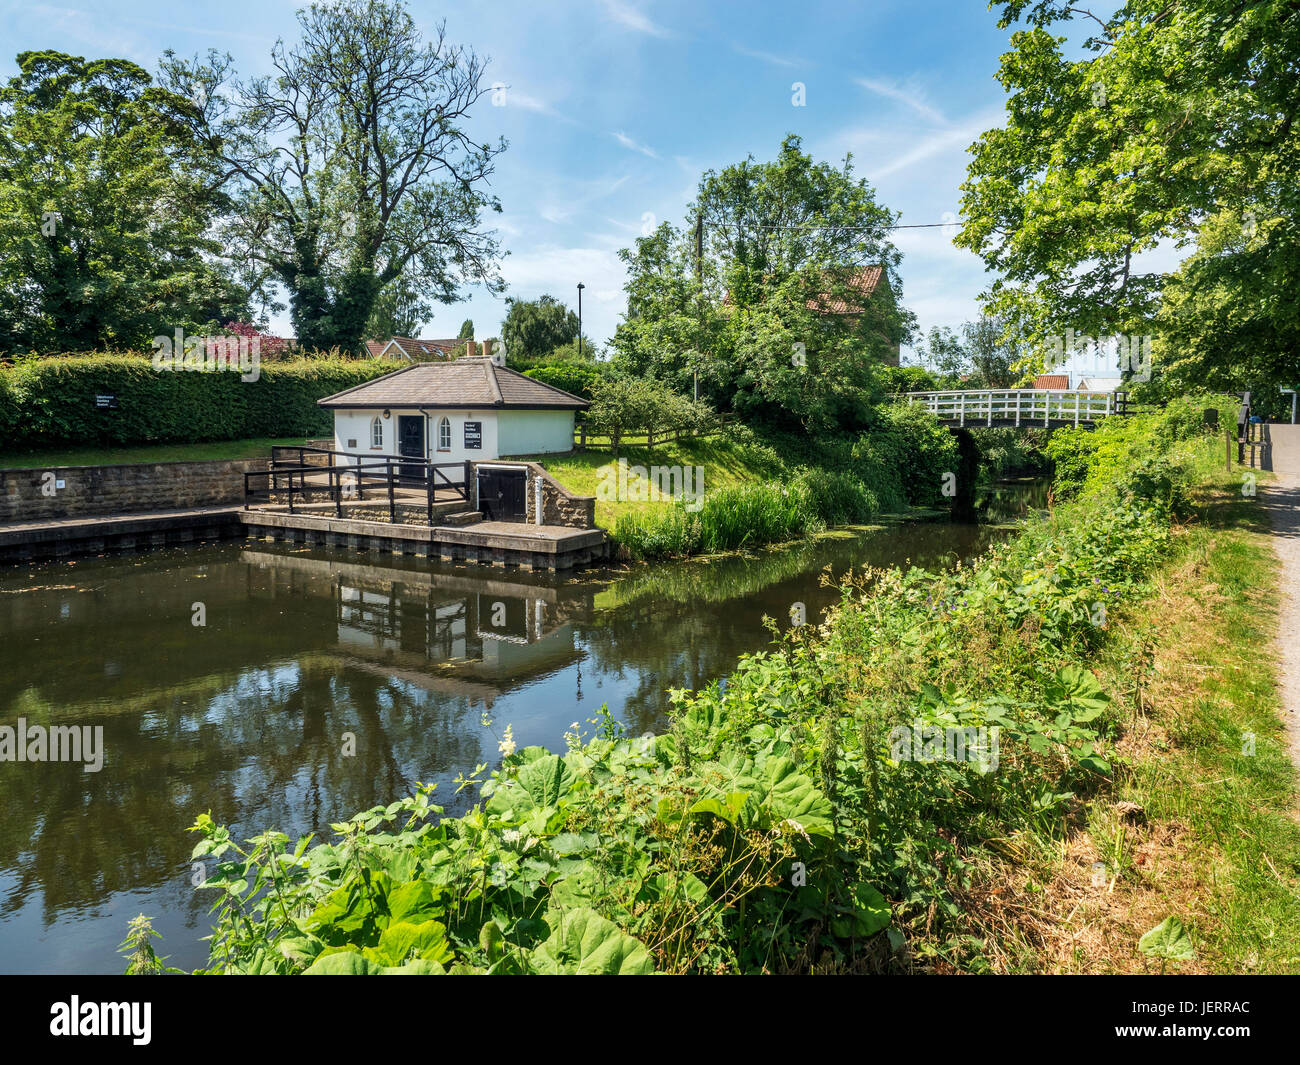 Mooring with Boaters Facilities and Foorbridge on the Ripon Canal at Ripon North Yorkshire England - Stock Image